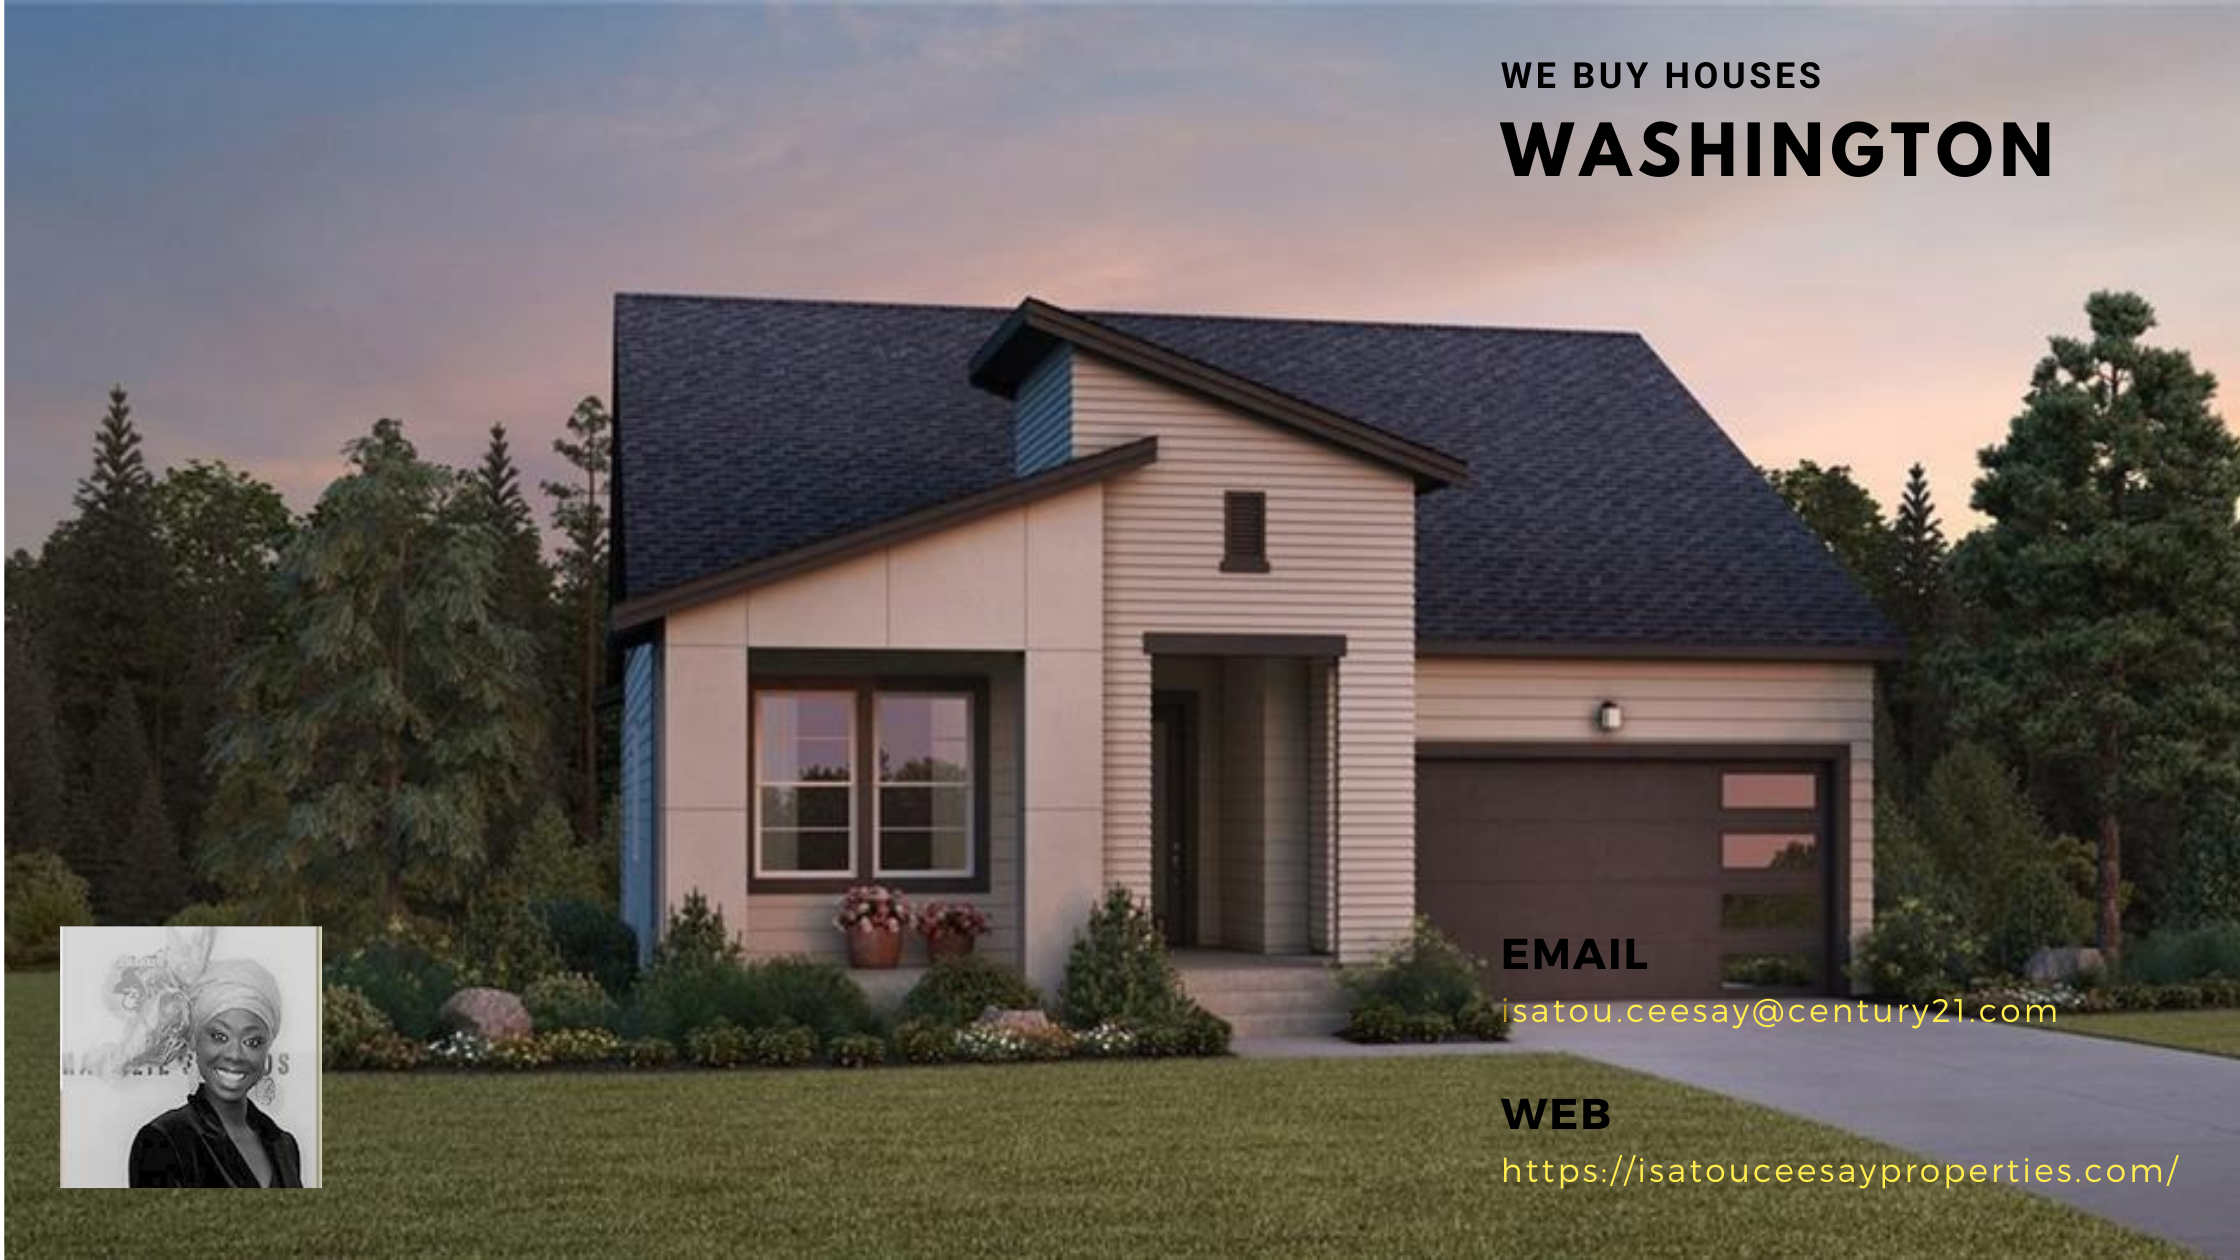 We Buy Houses Washington